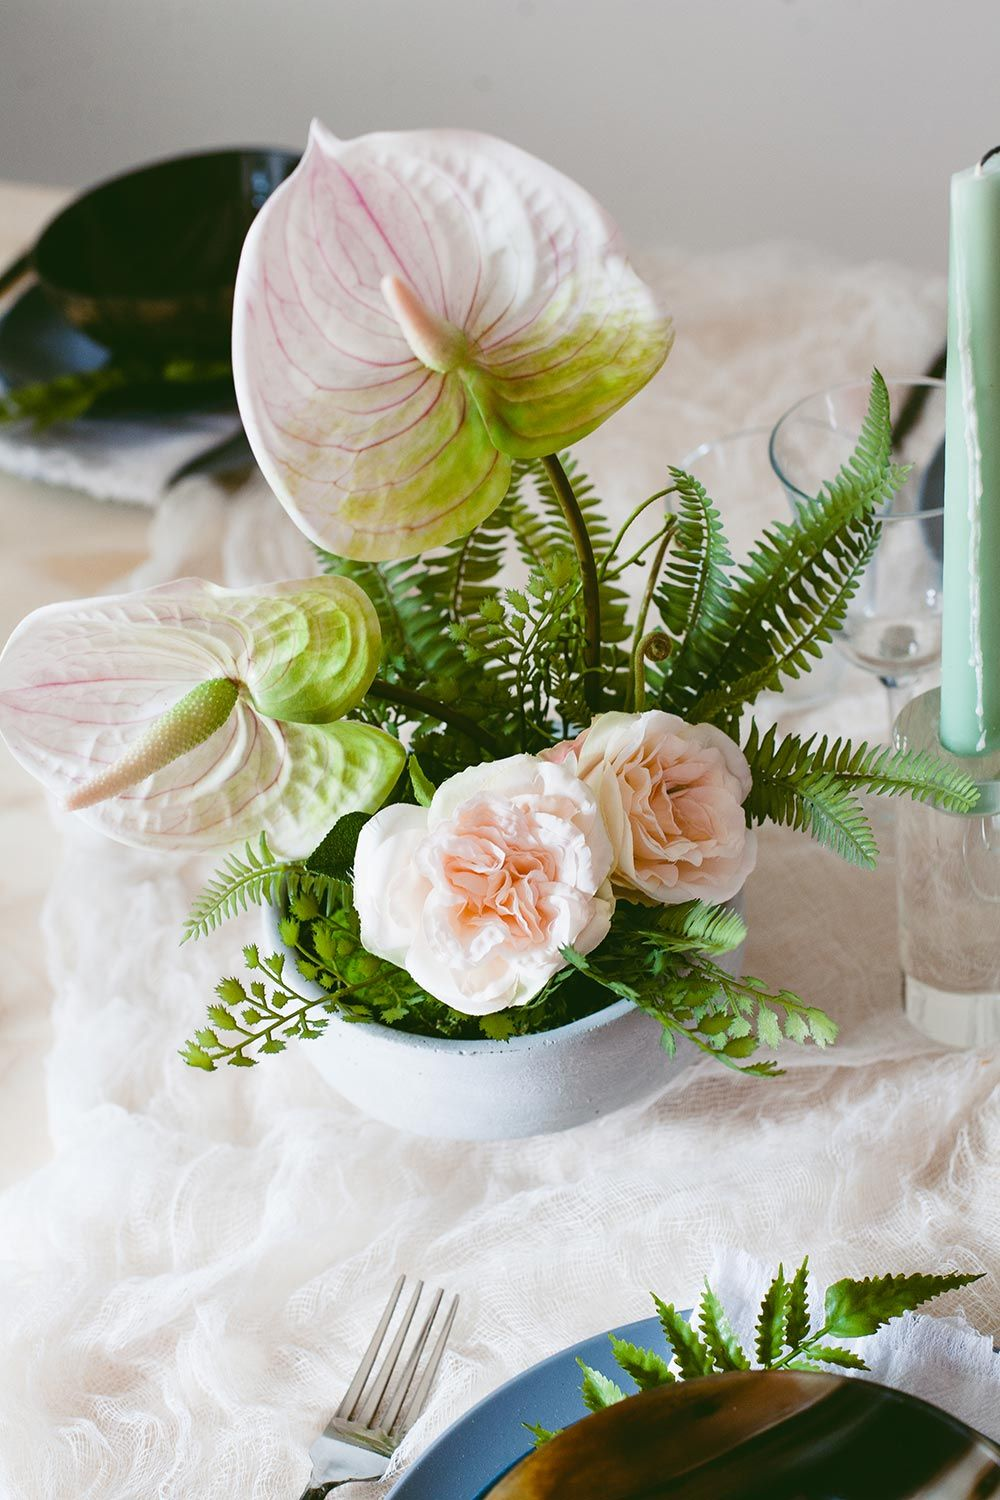 This All Greenery Tablescape With Ferns And Anthuriums Are The Perfect Summer Wedding Co Wedding Flower Trends Summer Wedding Centerpieces Wedding Centerpieces